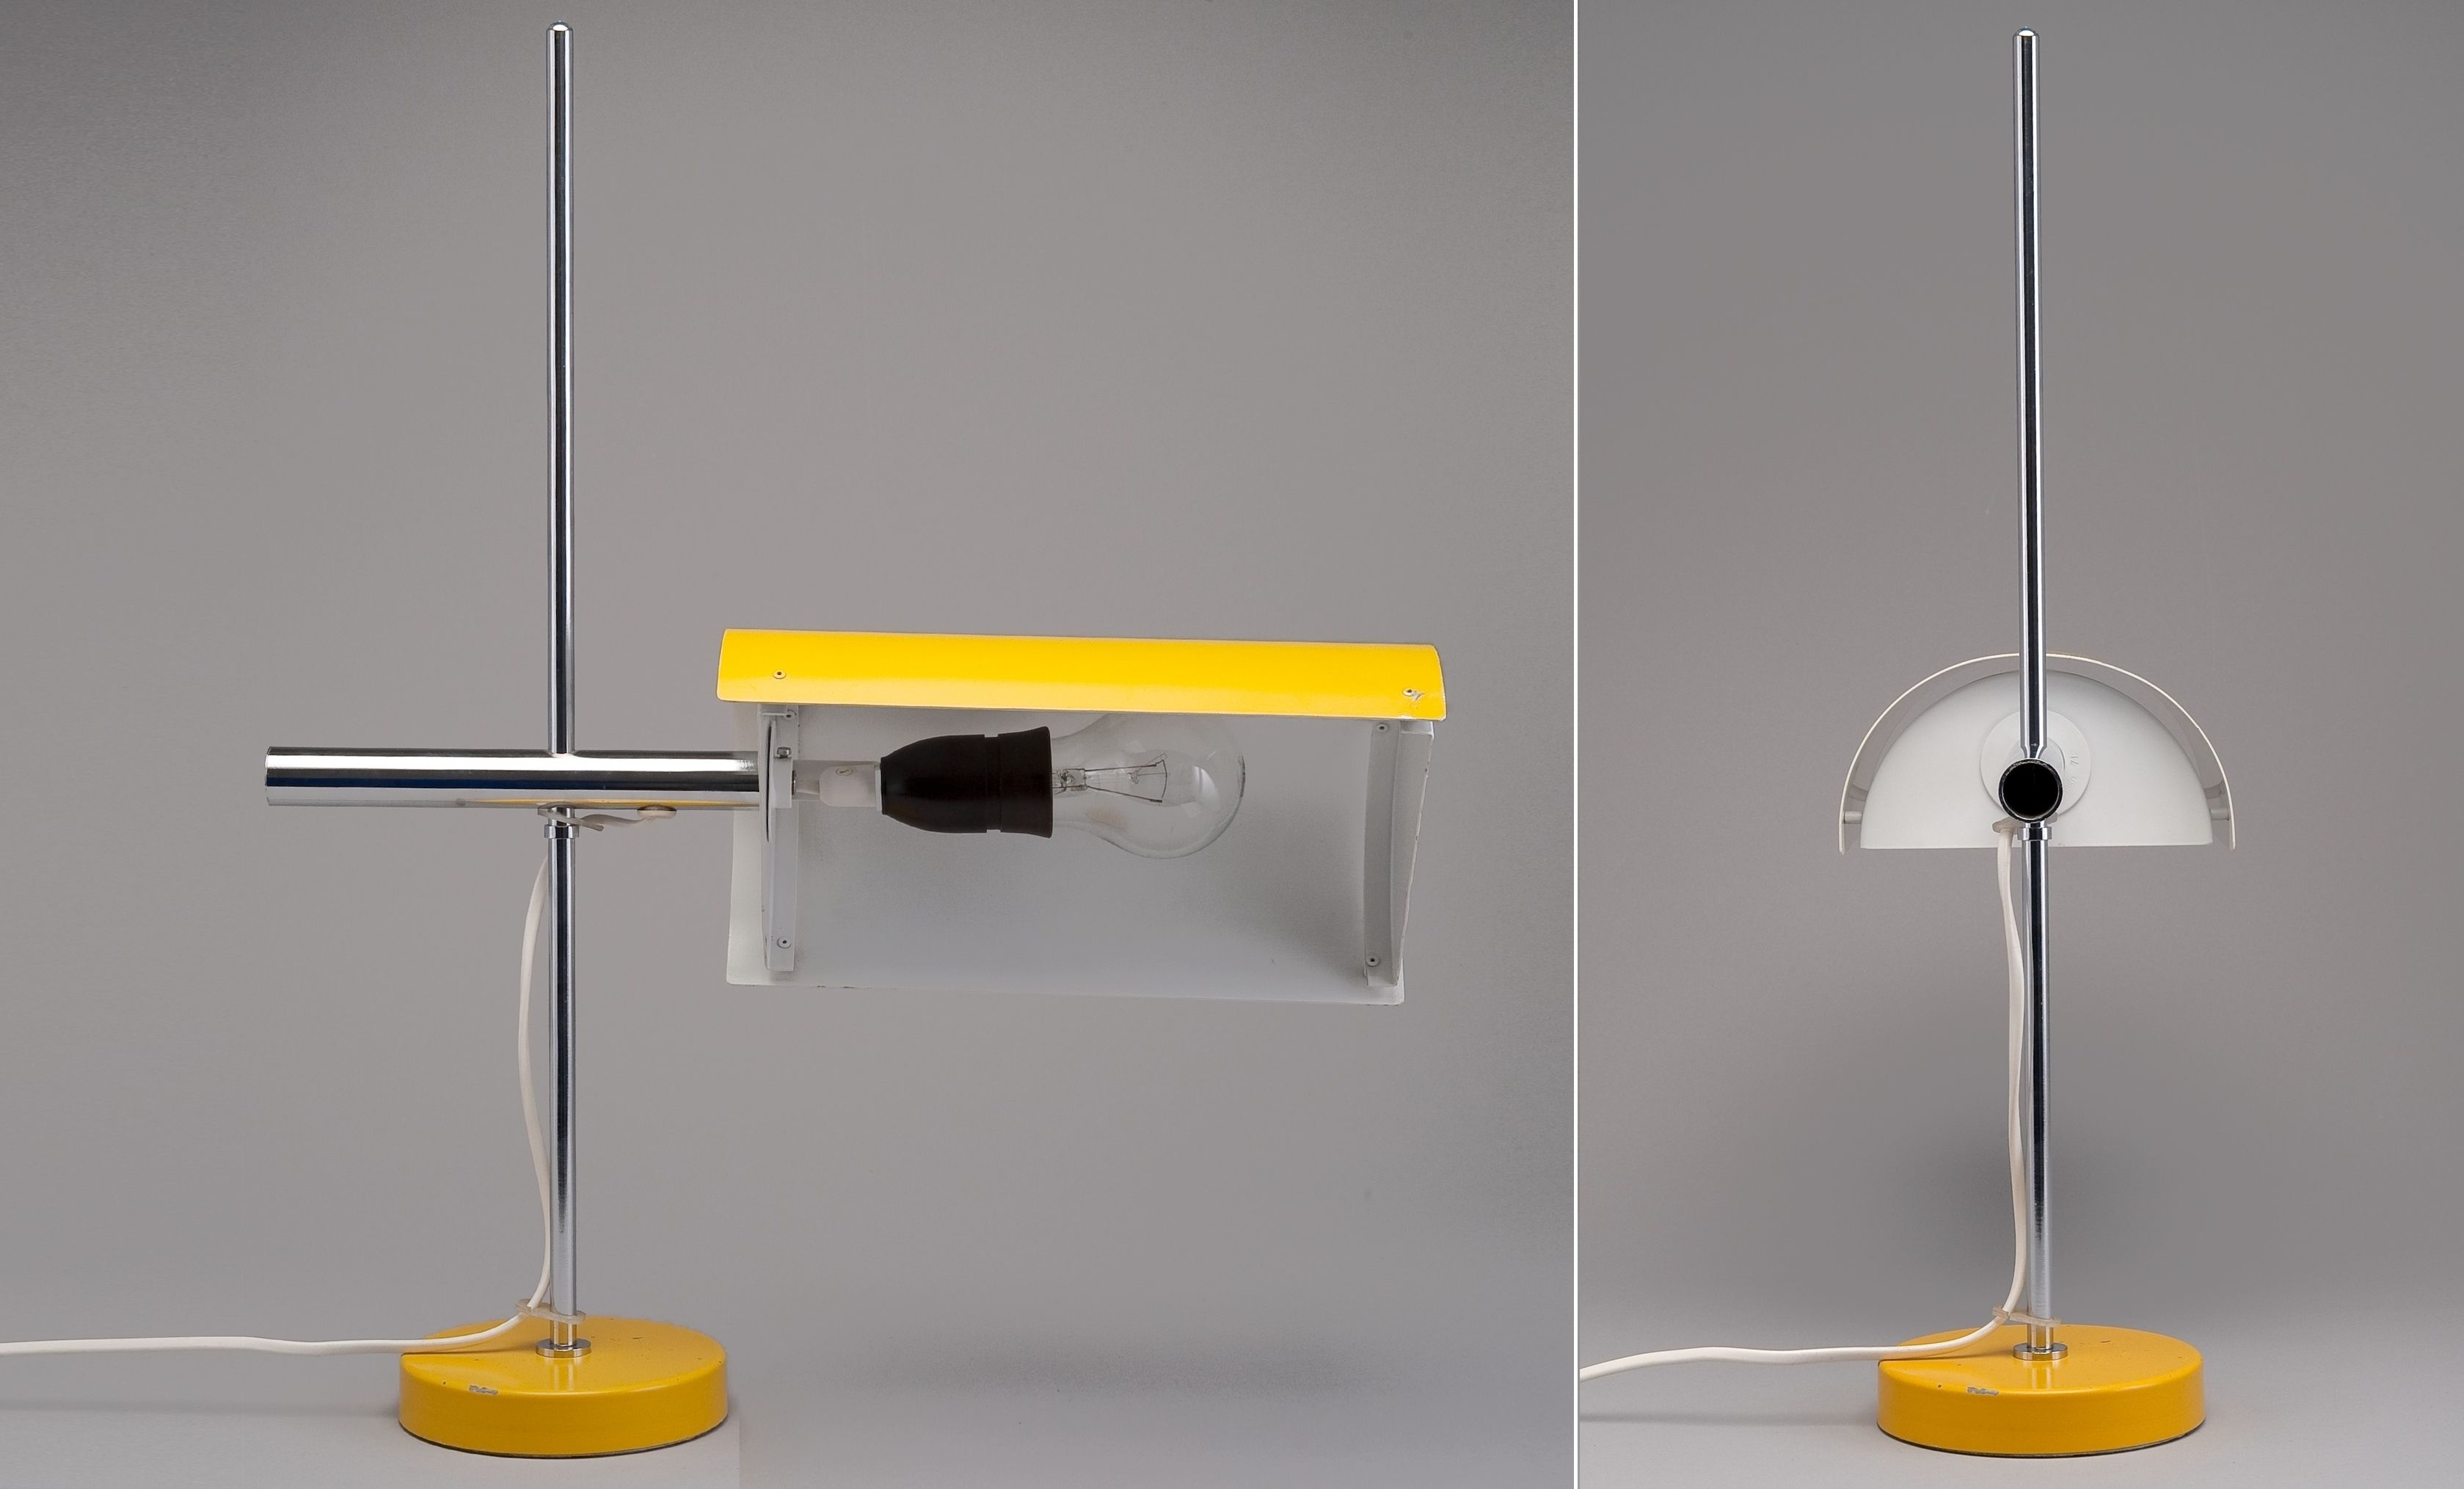 Bs 712 Designed By Ben Af Schulten C 1959 Made By Artek Reflector And Base Aluminum Stem Chrome H 52 Cm W 40 5 Cm Source Lamp Modern Furniture Design